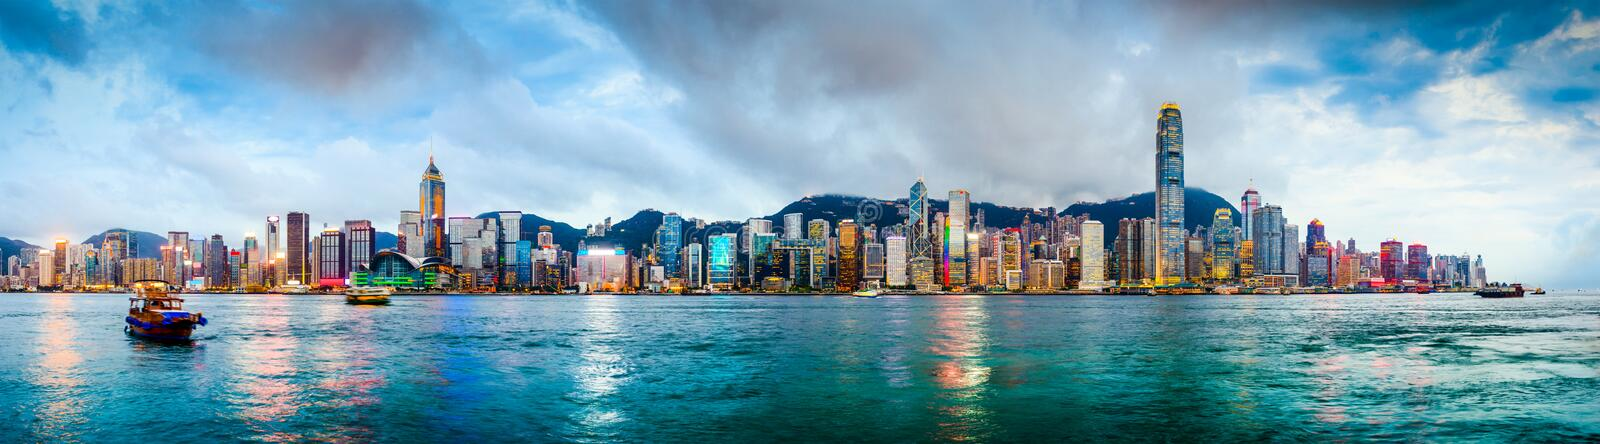 Hong Kong China Skyline lizenzfreies stockfoto